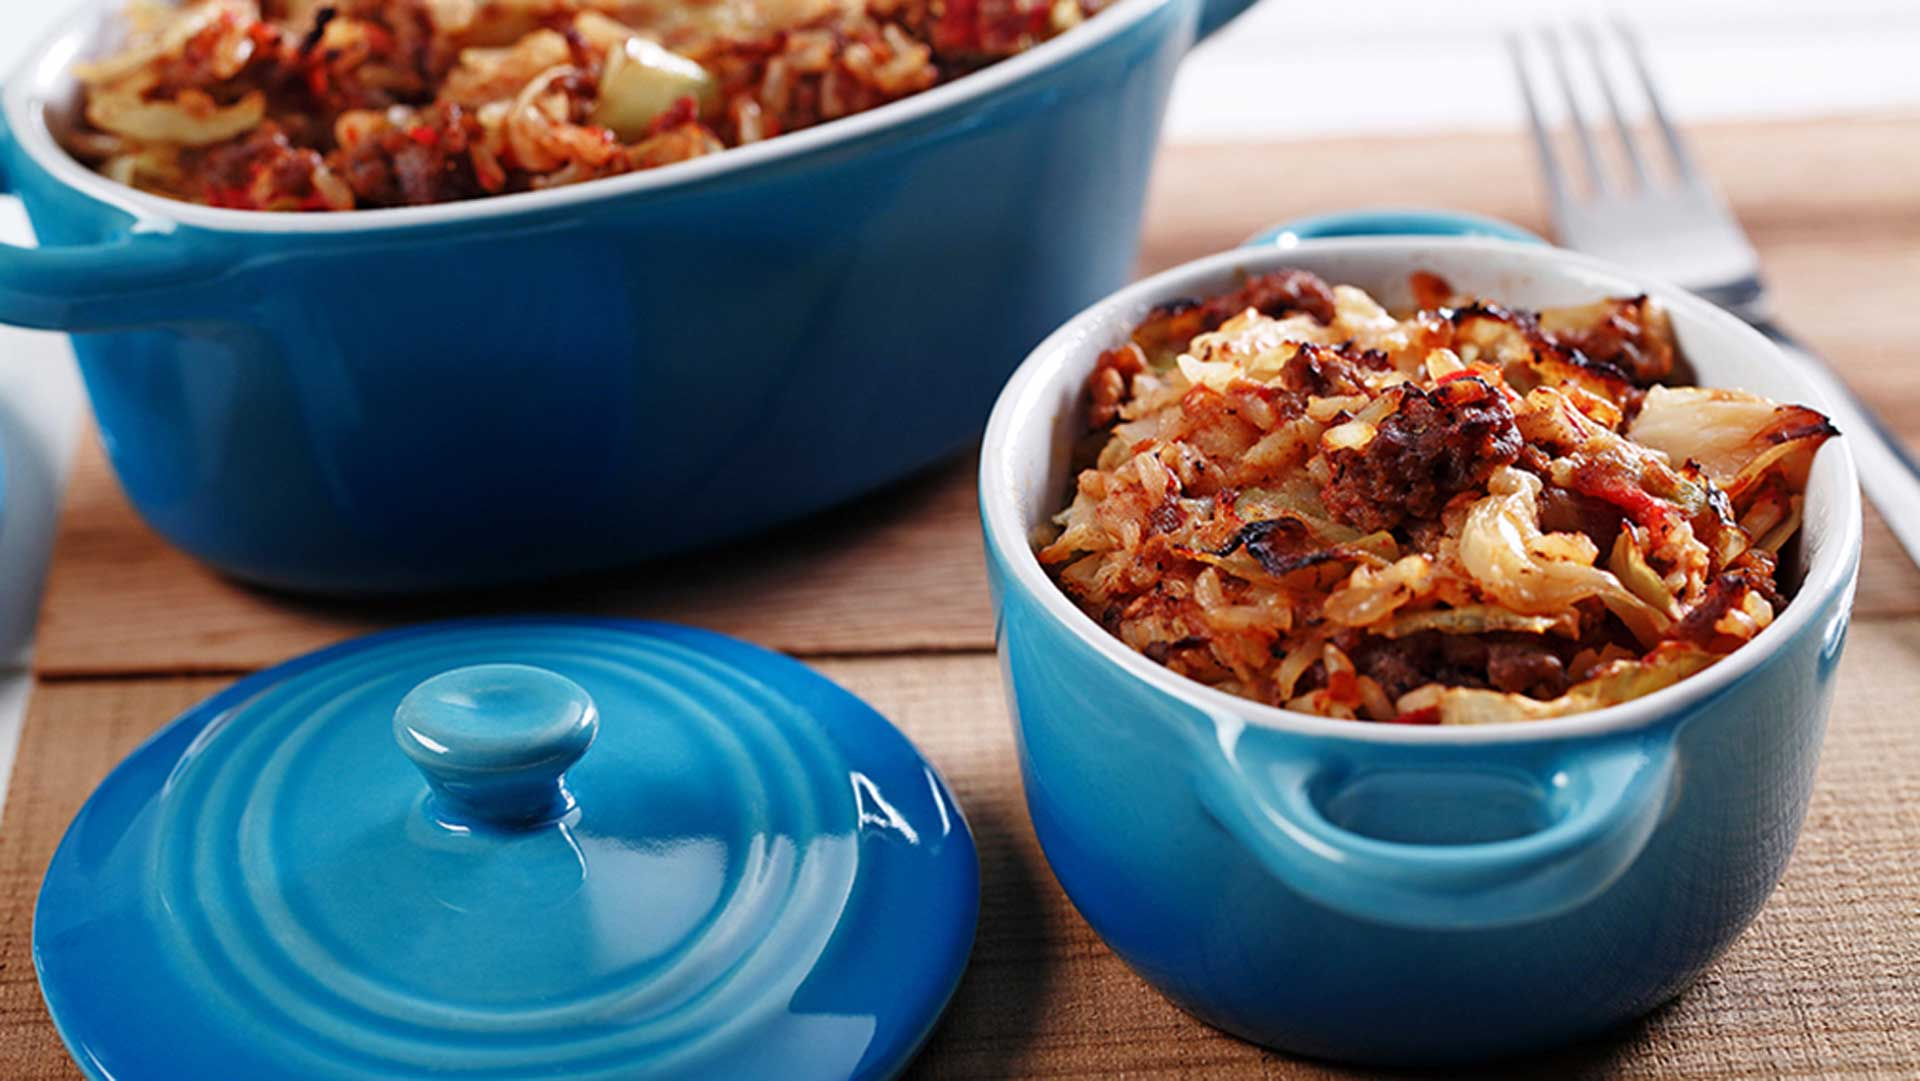 Cabbage casserole in blue ceramic pot